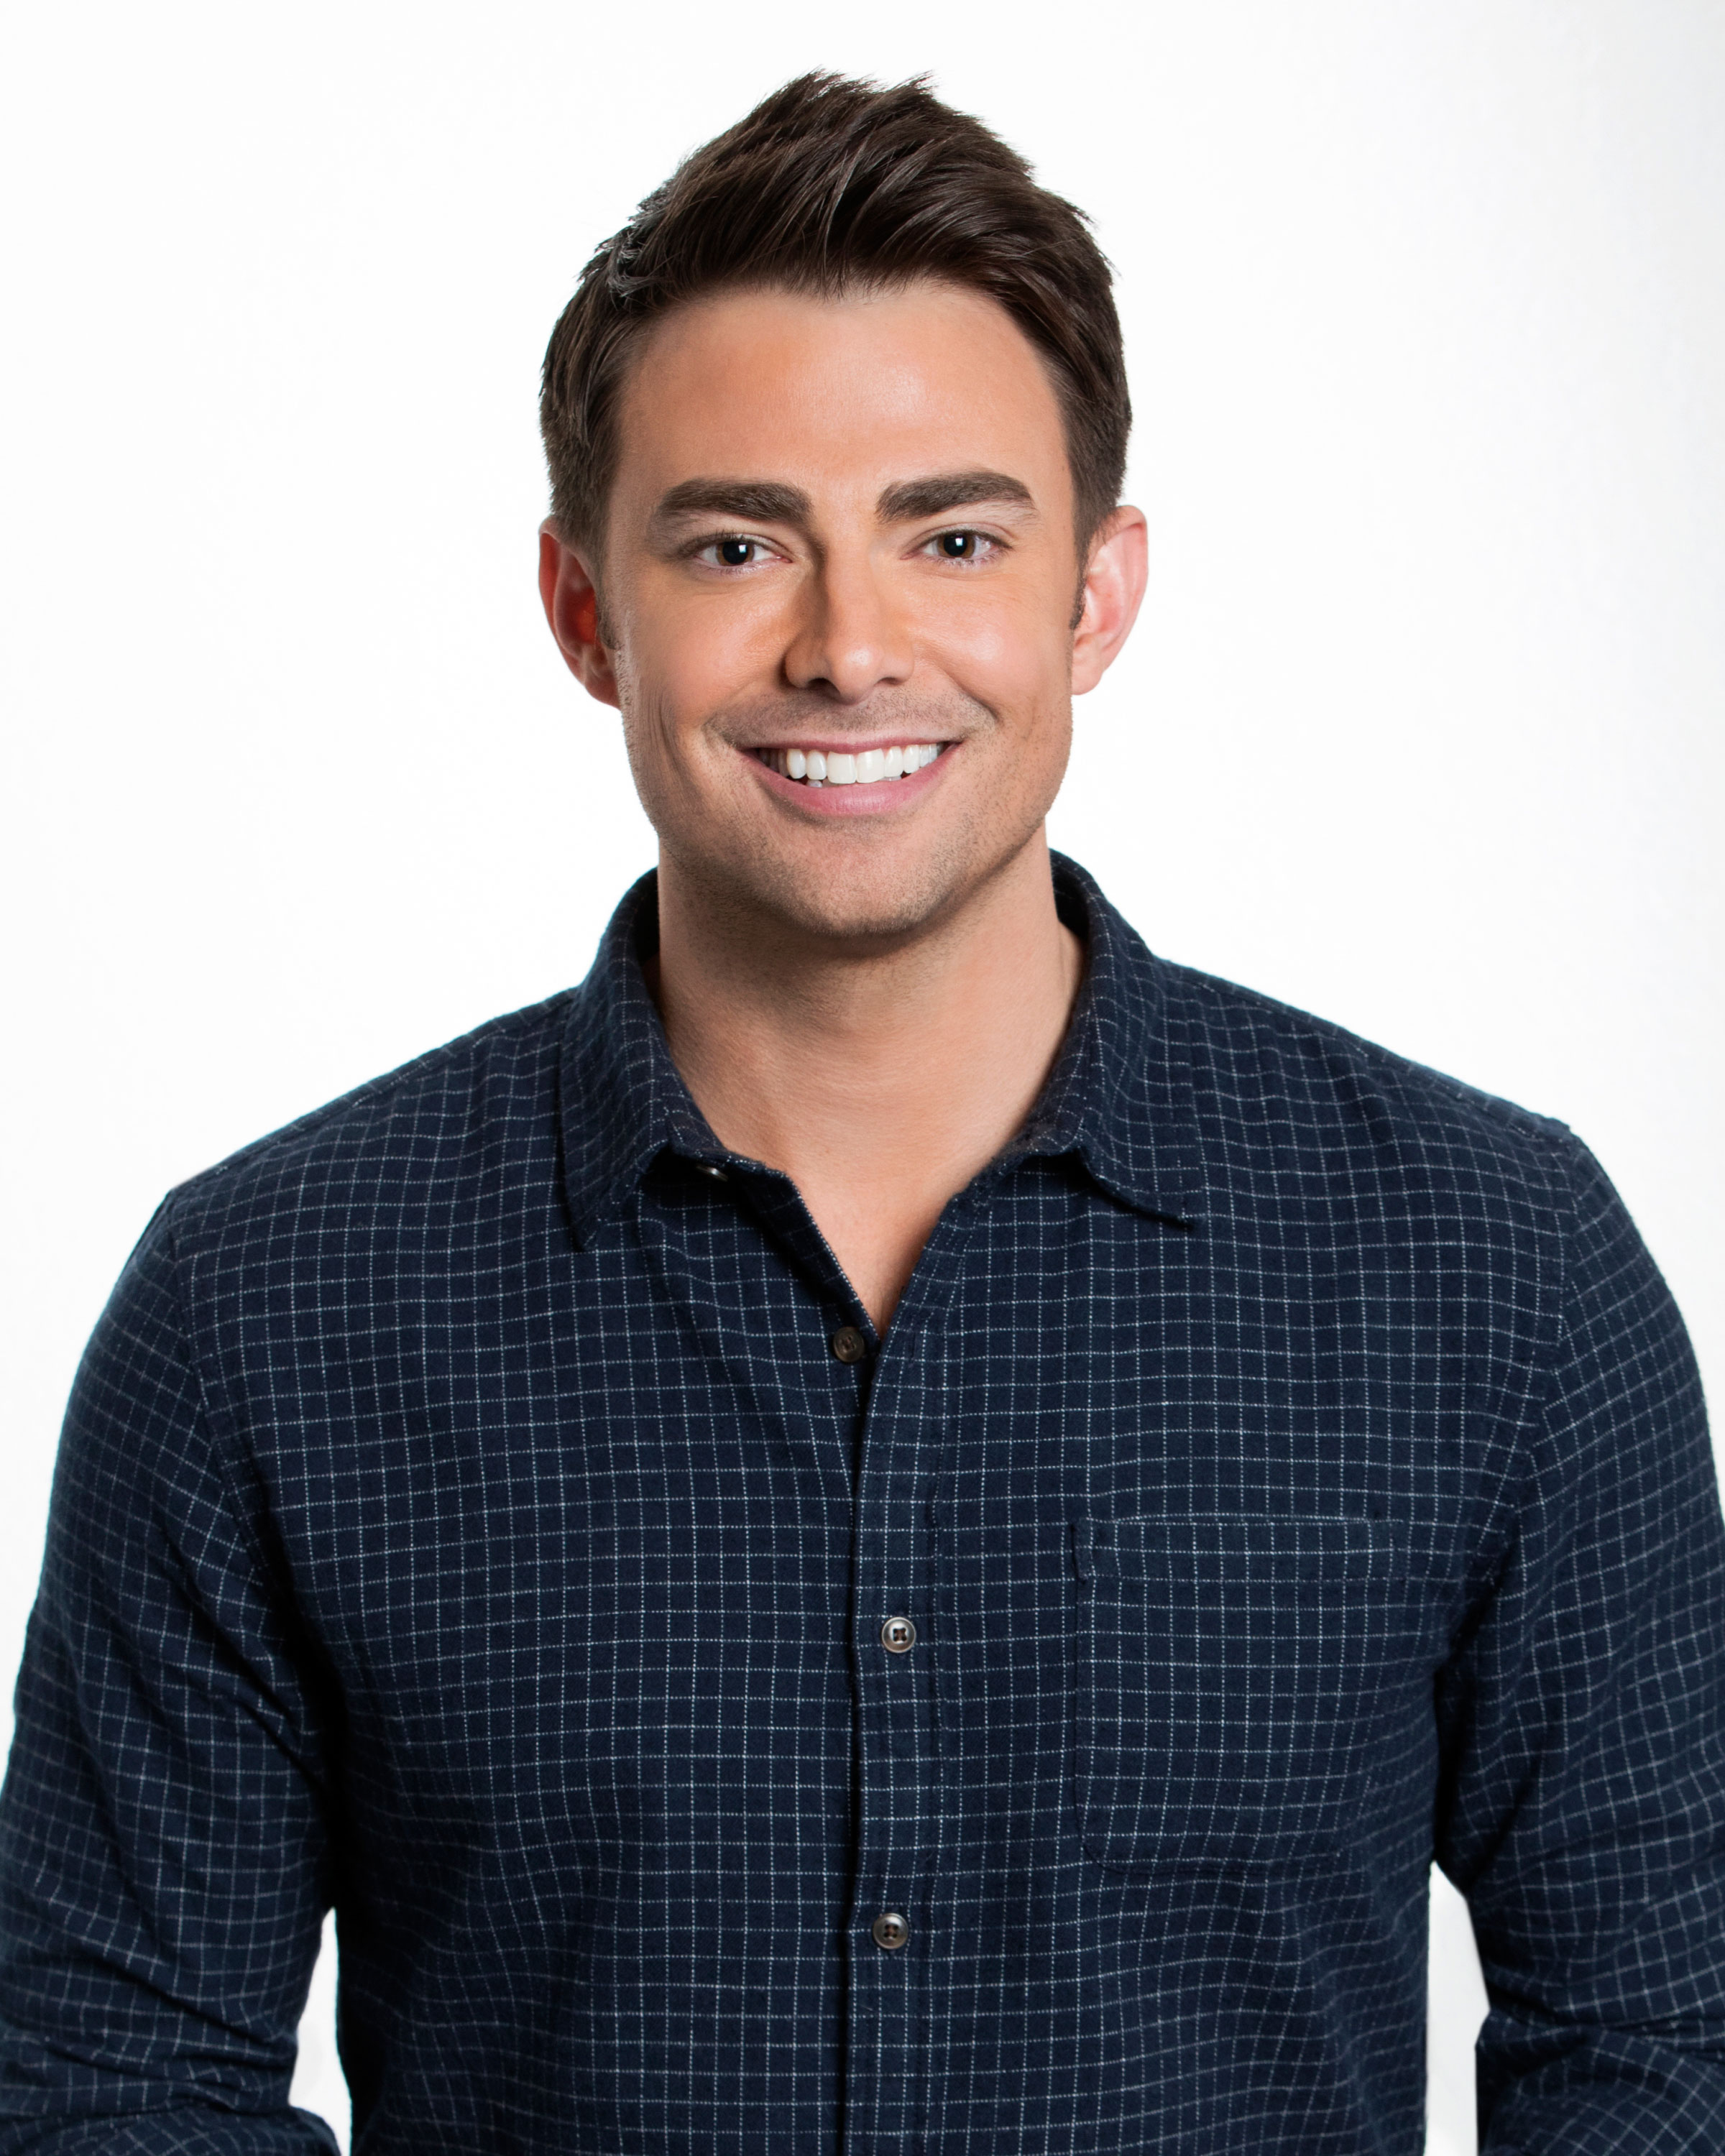 BIG-BROTHER-CELEBRITY-EDITION-Jonathan Bennett - Best known for his role as Aaron Samuels in Mean Girls , the 37-year-old actor recently booked a role on The CW's Supergirl . In 2014, he competed on Dancing With the Stars and in 2015, he hosted Cake Wars .